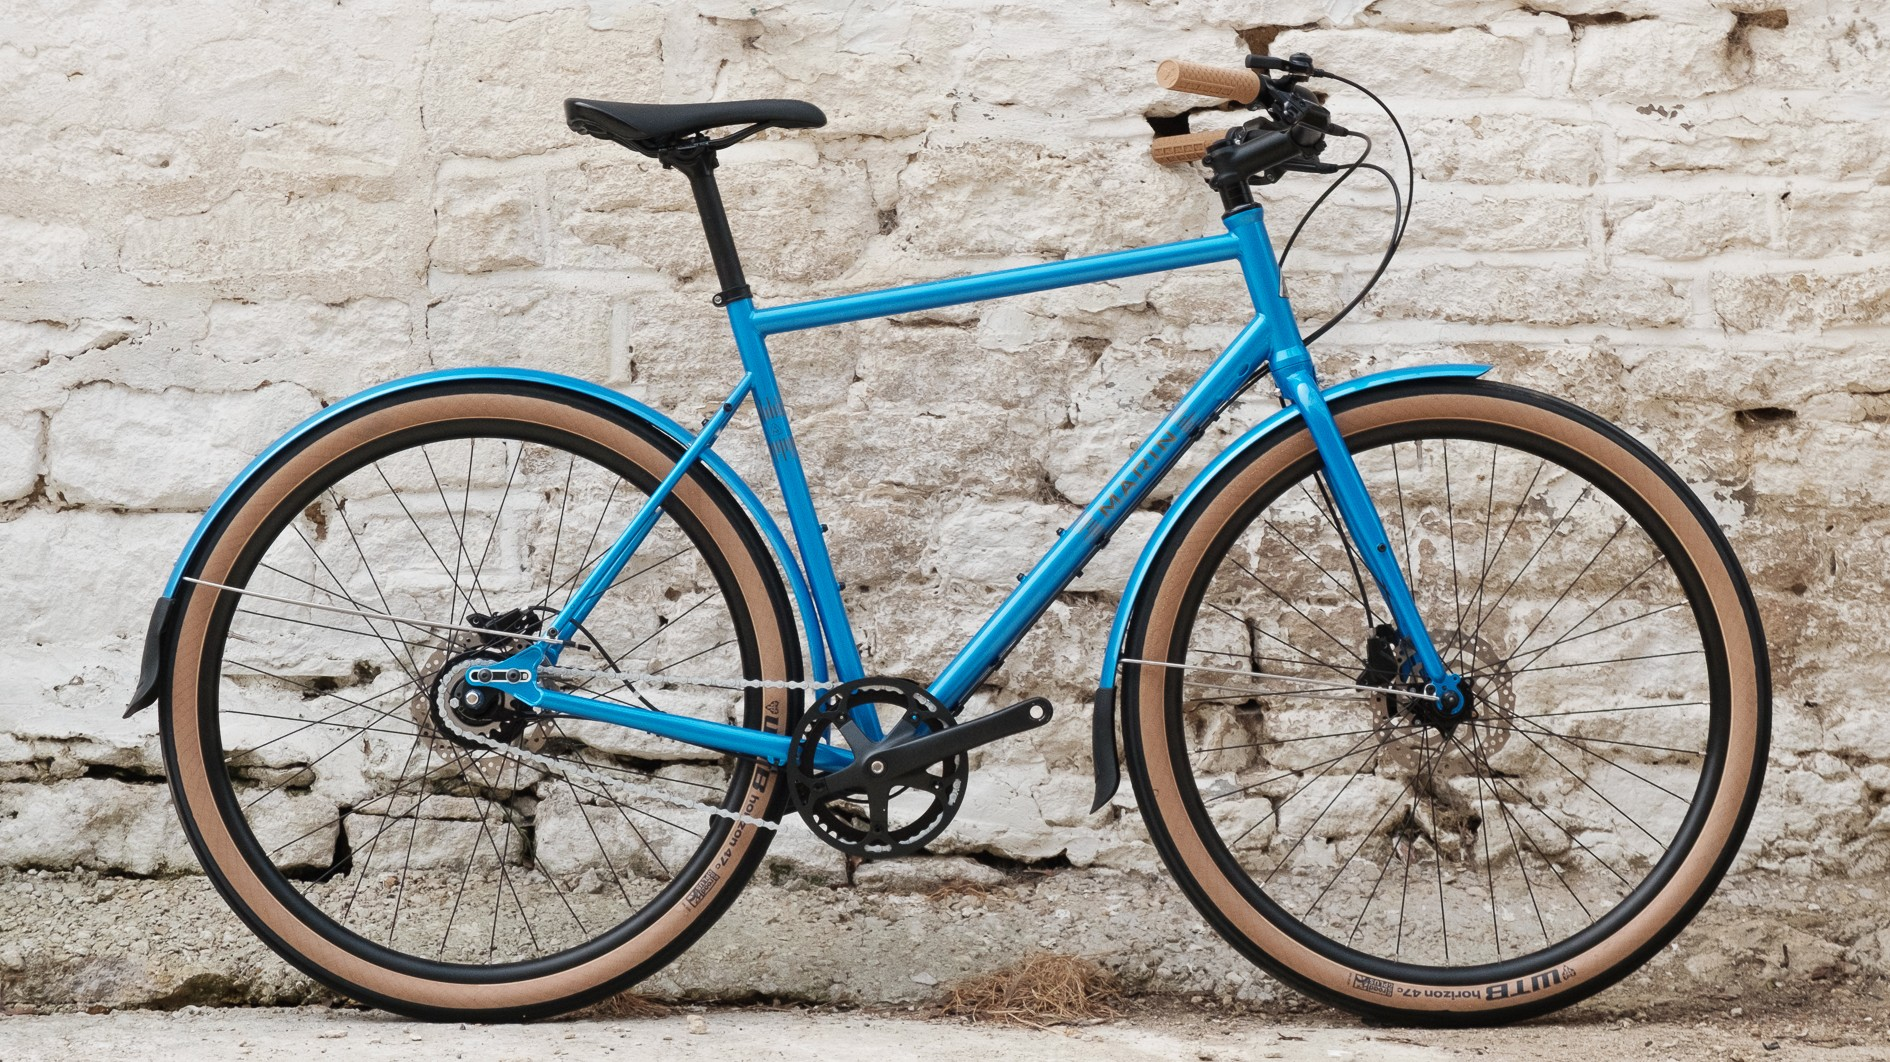 This handsome blue town bike was a standout model at the show